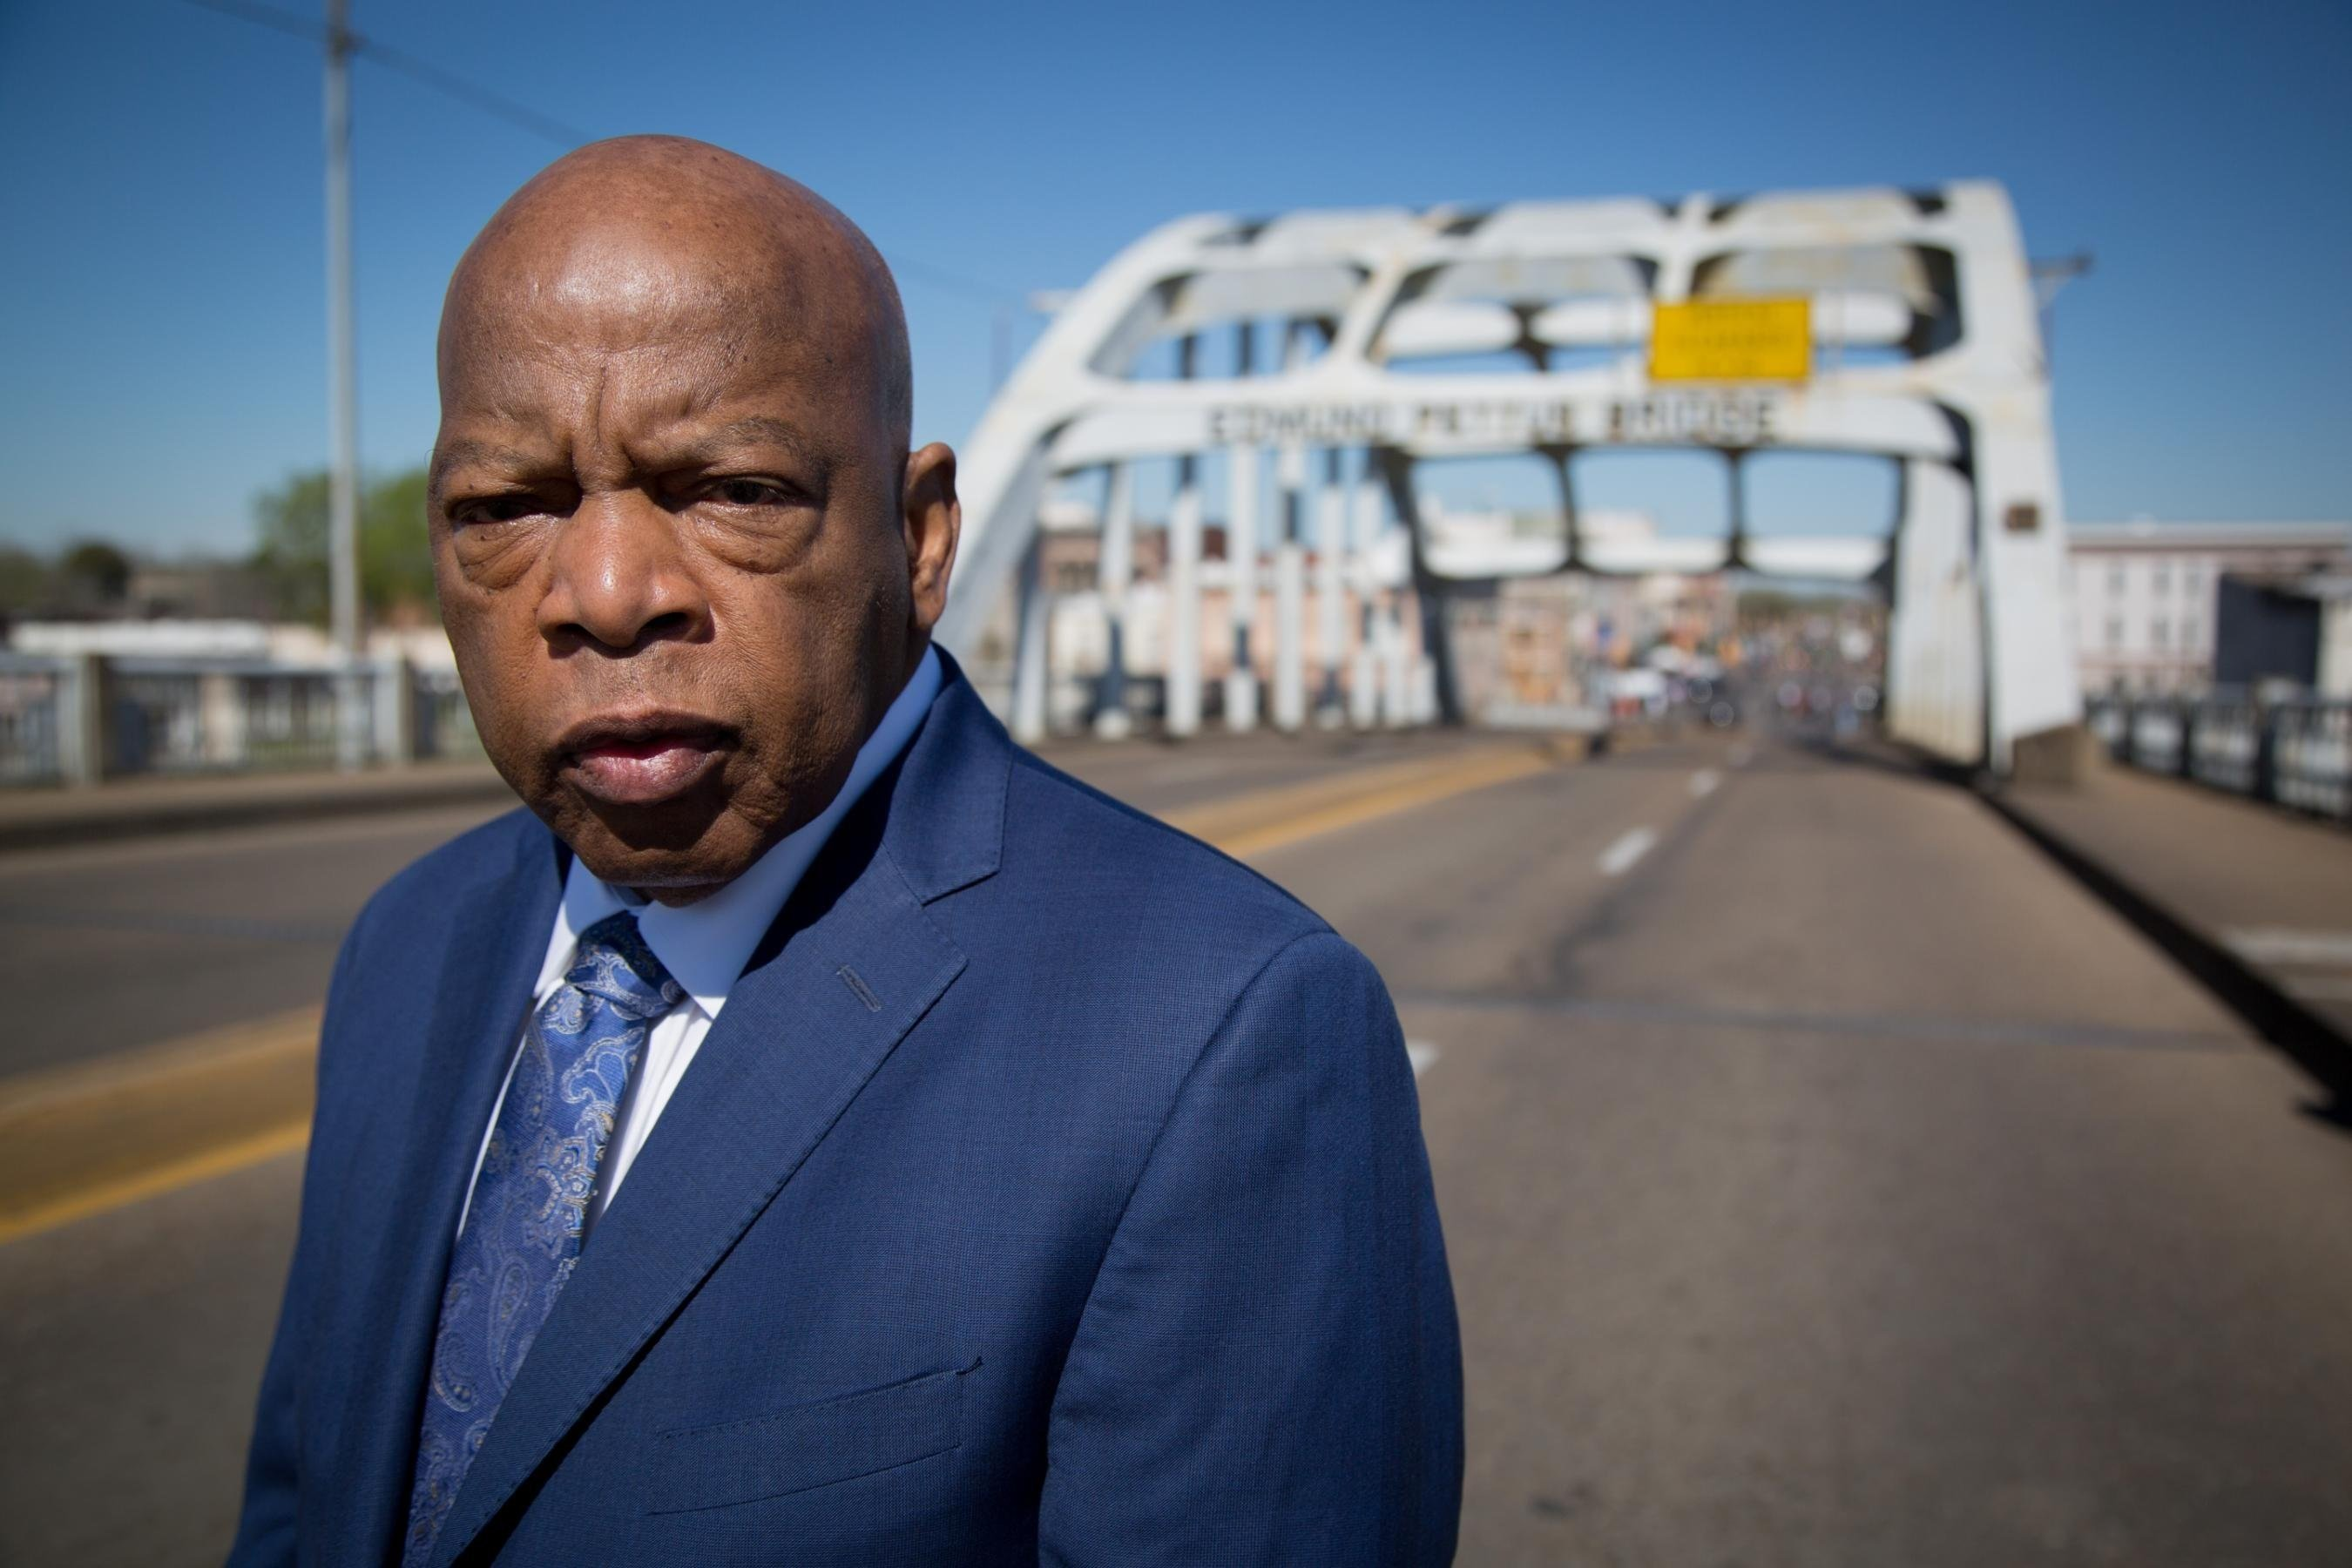 Congressman and civil rights icon John Lewis is seen here in Selma, Alabama.